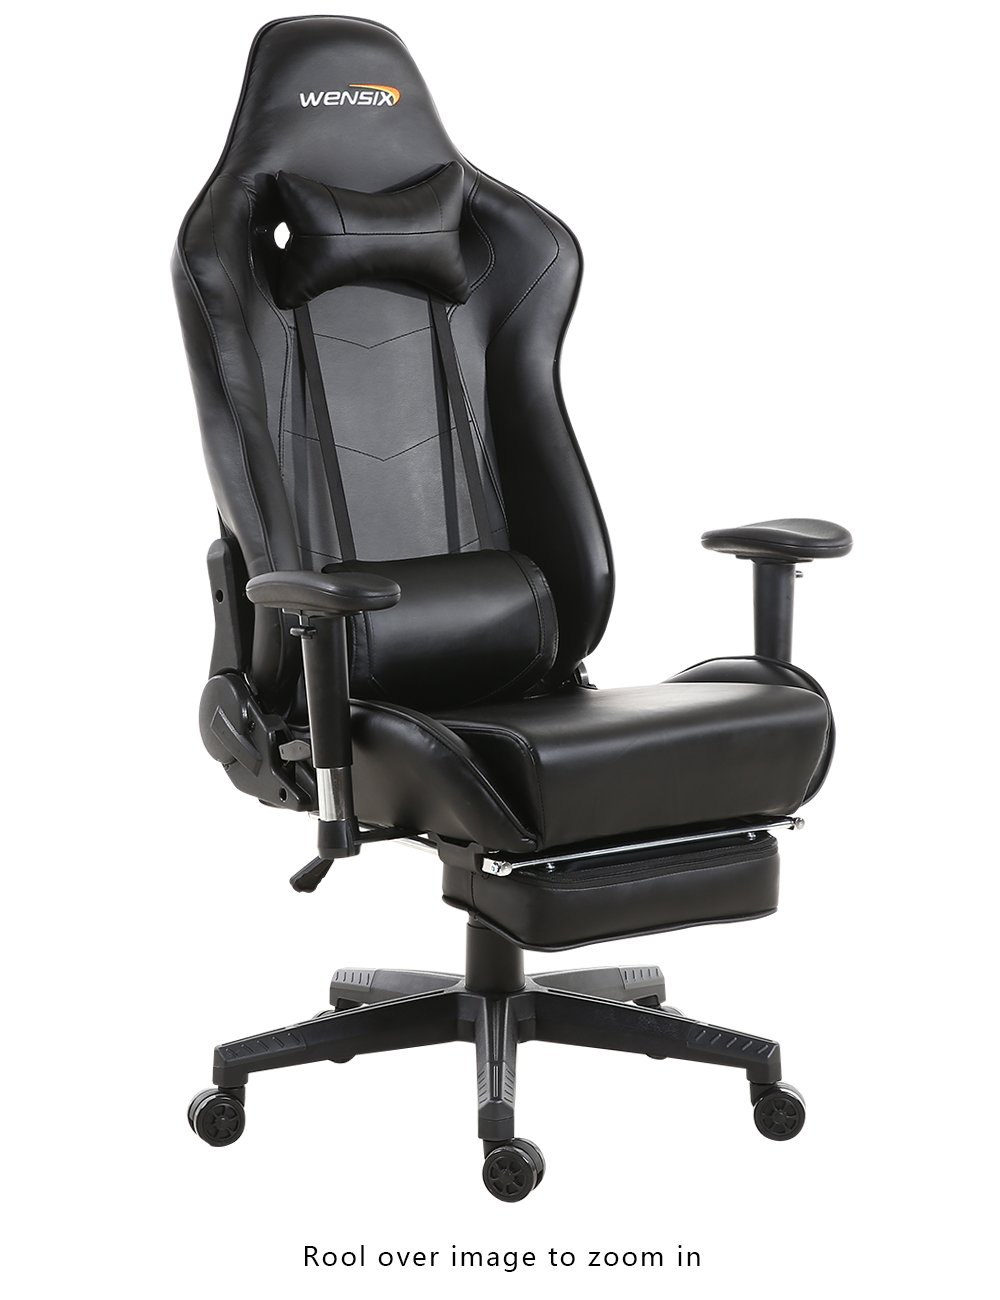 WENSIX Gaming Chair High Back Computer Chair With Adjusting Footrest, Ergonomic designs Extremely Durable PU Leather Steel Frame Racing Chair (Black)